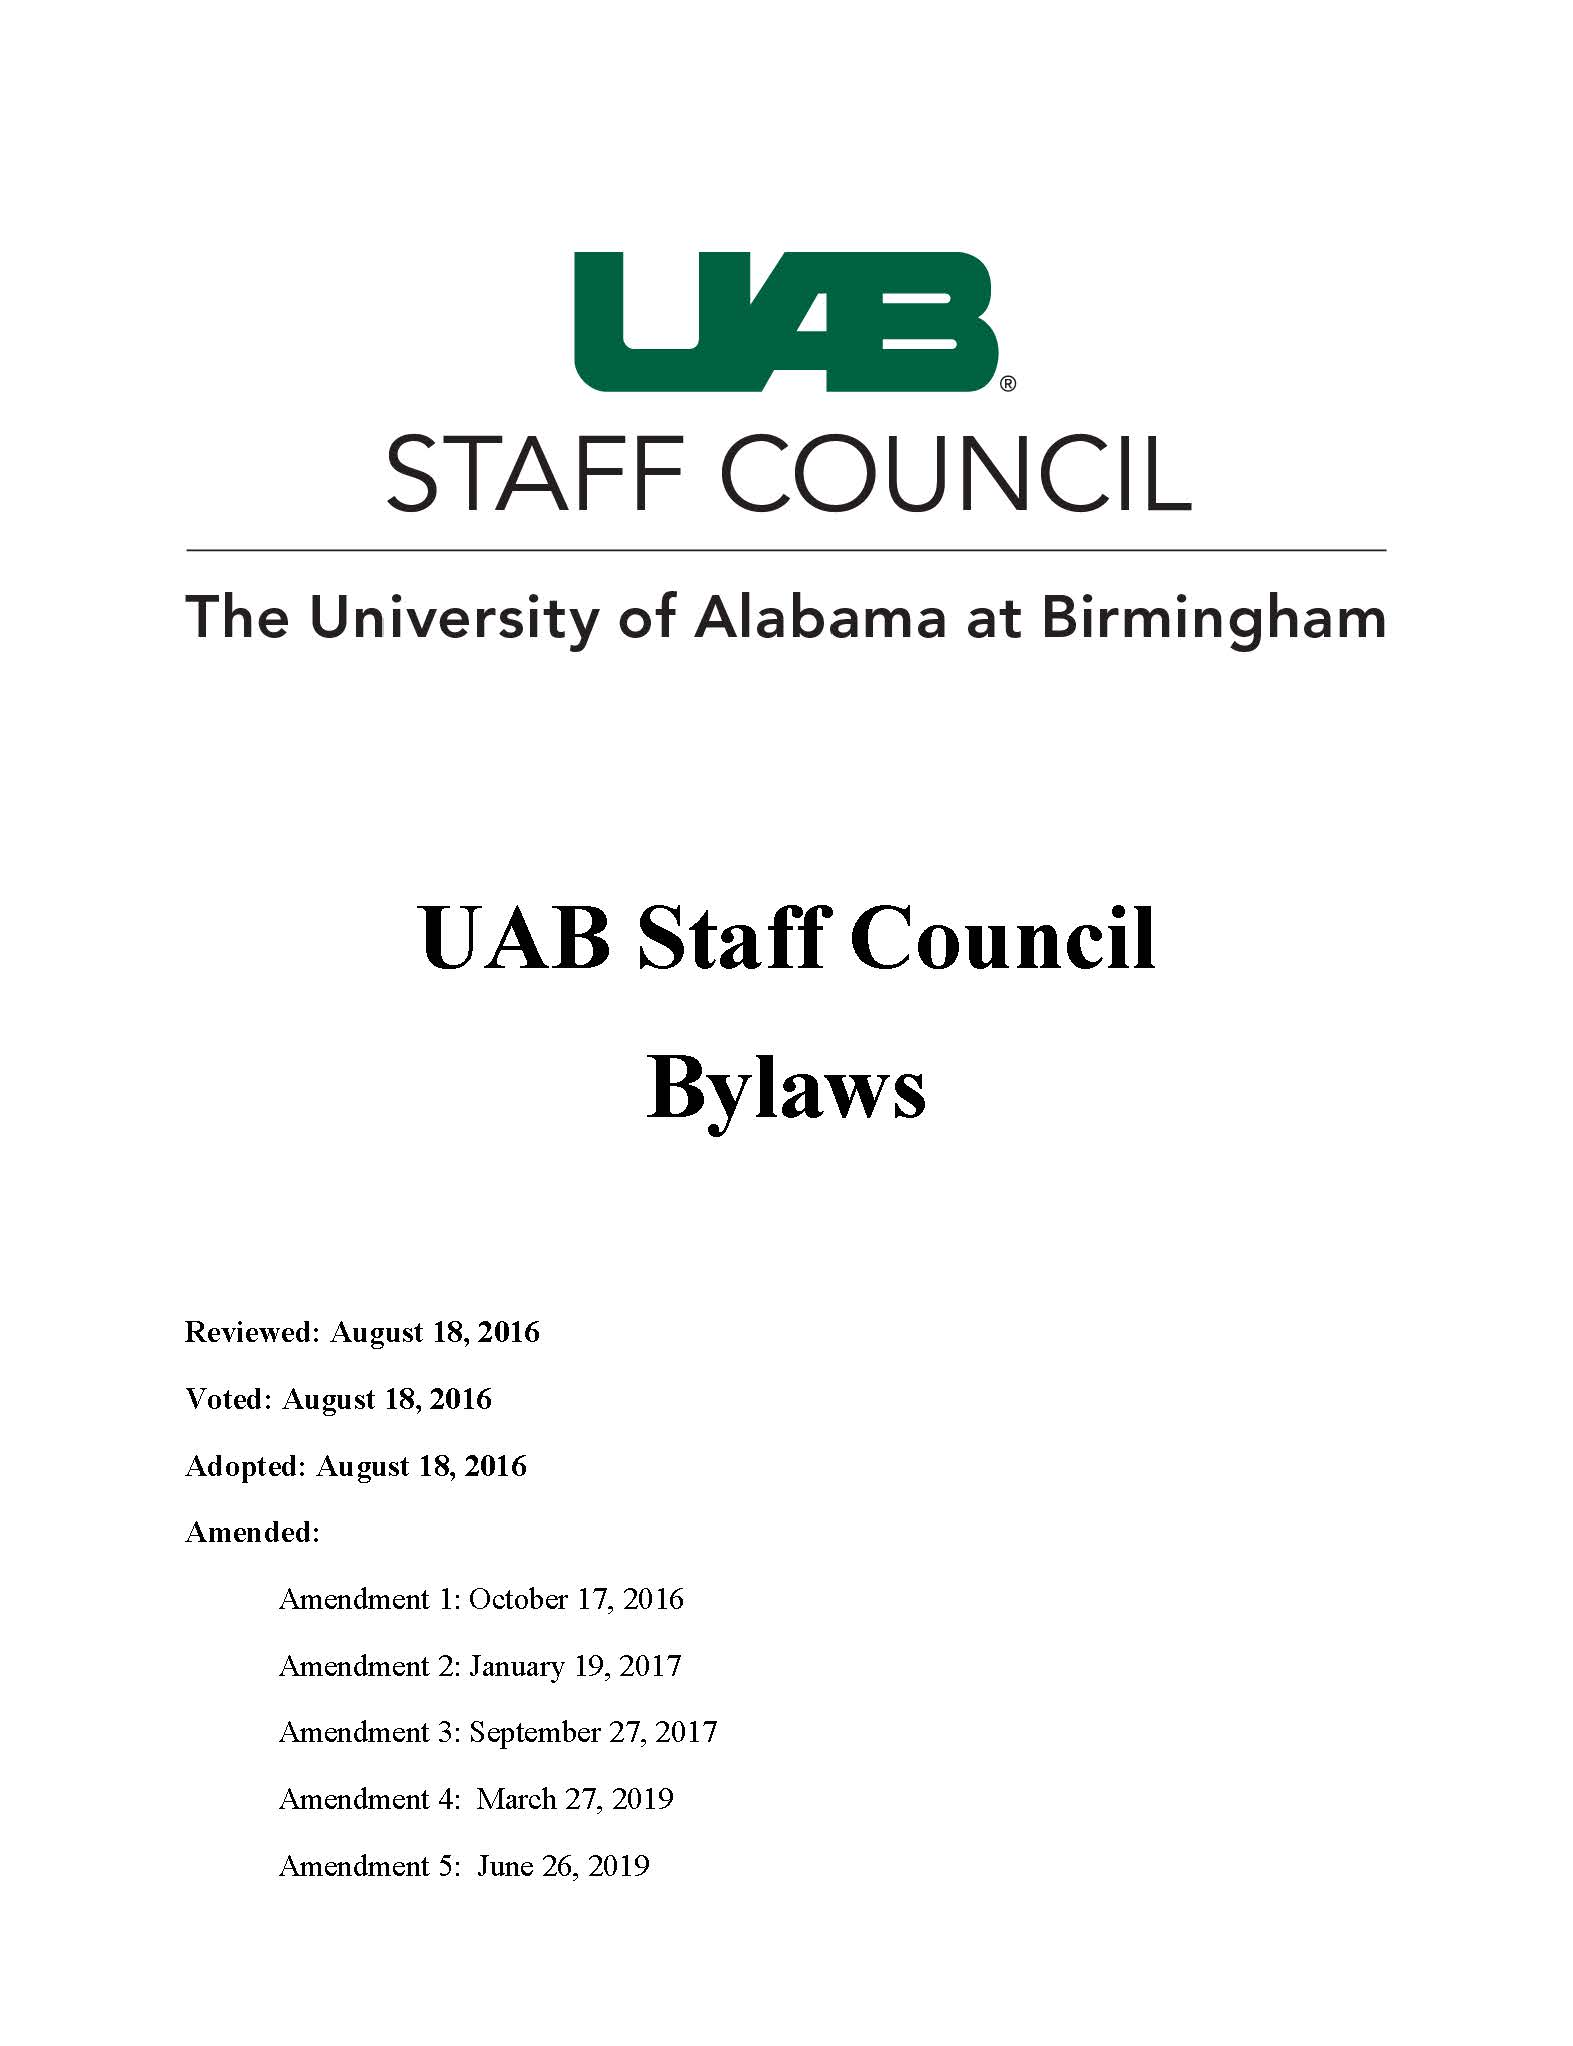 UAB Staff Council Bylaws Amendment 5 Final Page 01